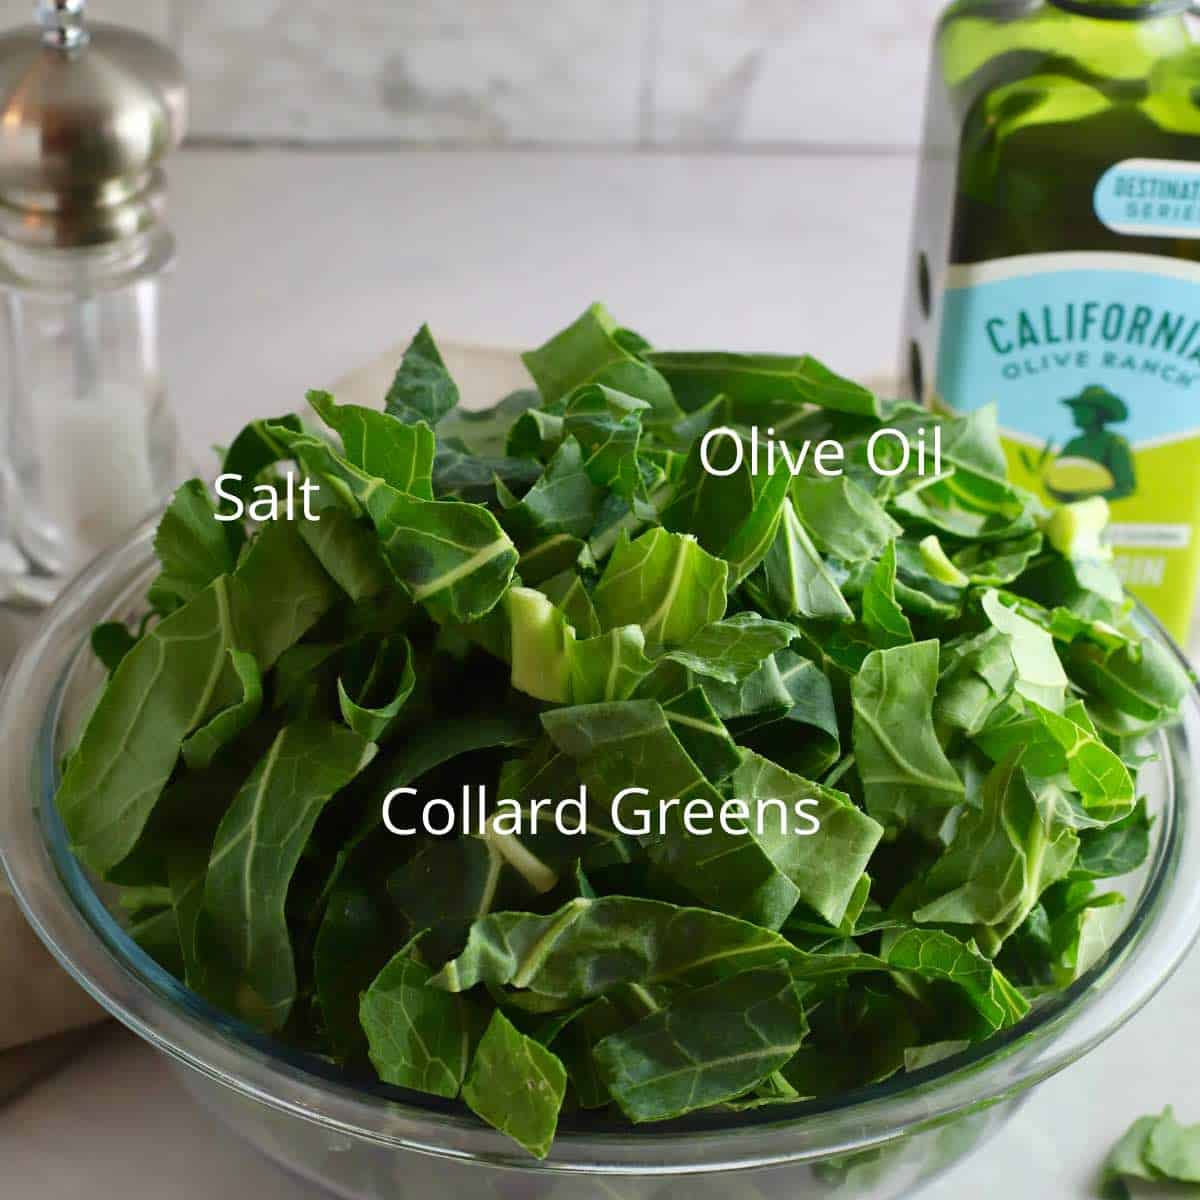 A large bowl of uncooked collard greens, a bottle of olive oil and salt.